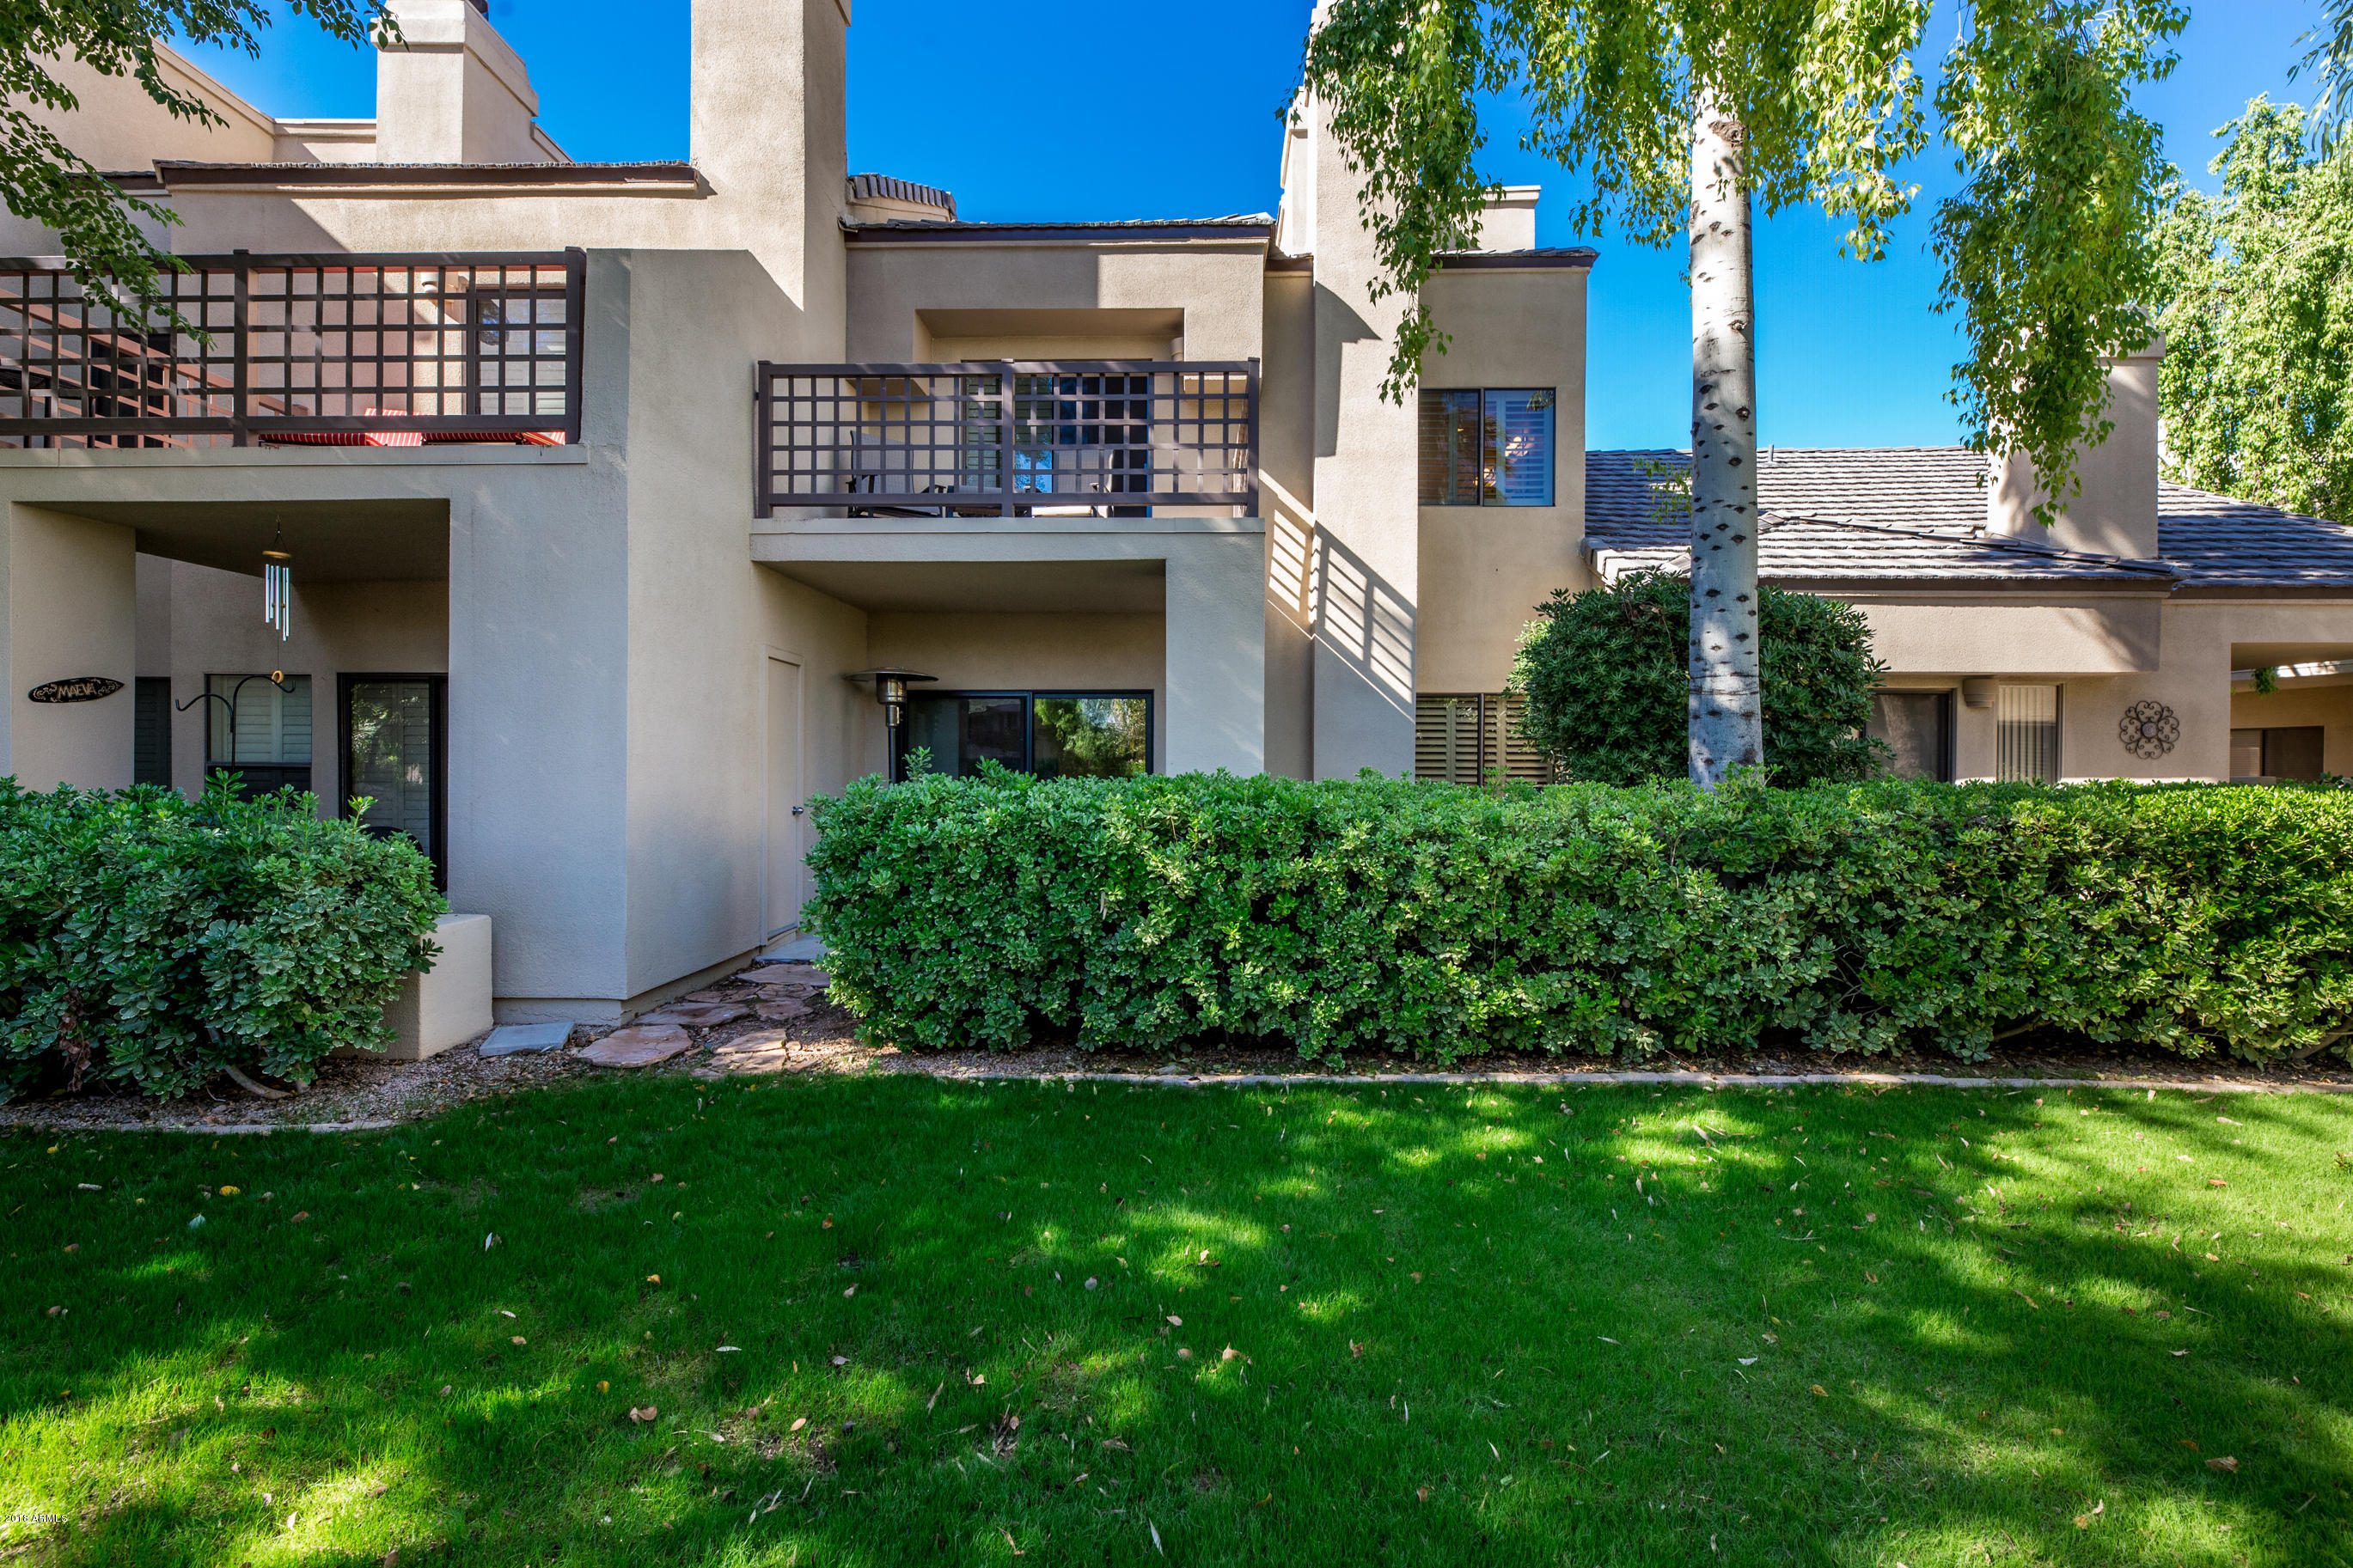 MLS 5967332 7272 E GAINEY RANCH Road Unit 95, Scottsdale, AZ 85258 Scottsdale AZ Gainey Ranch